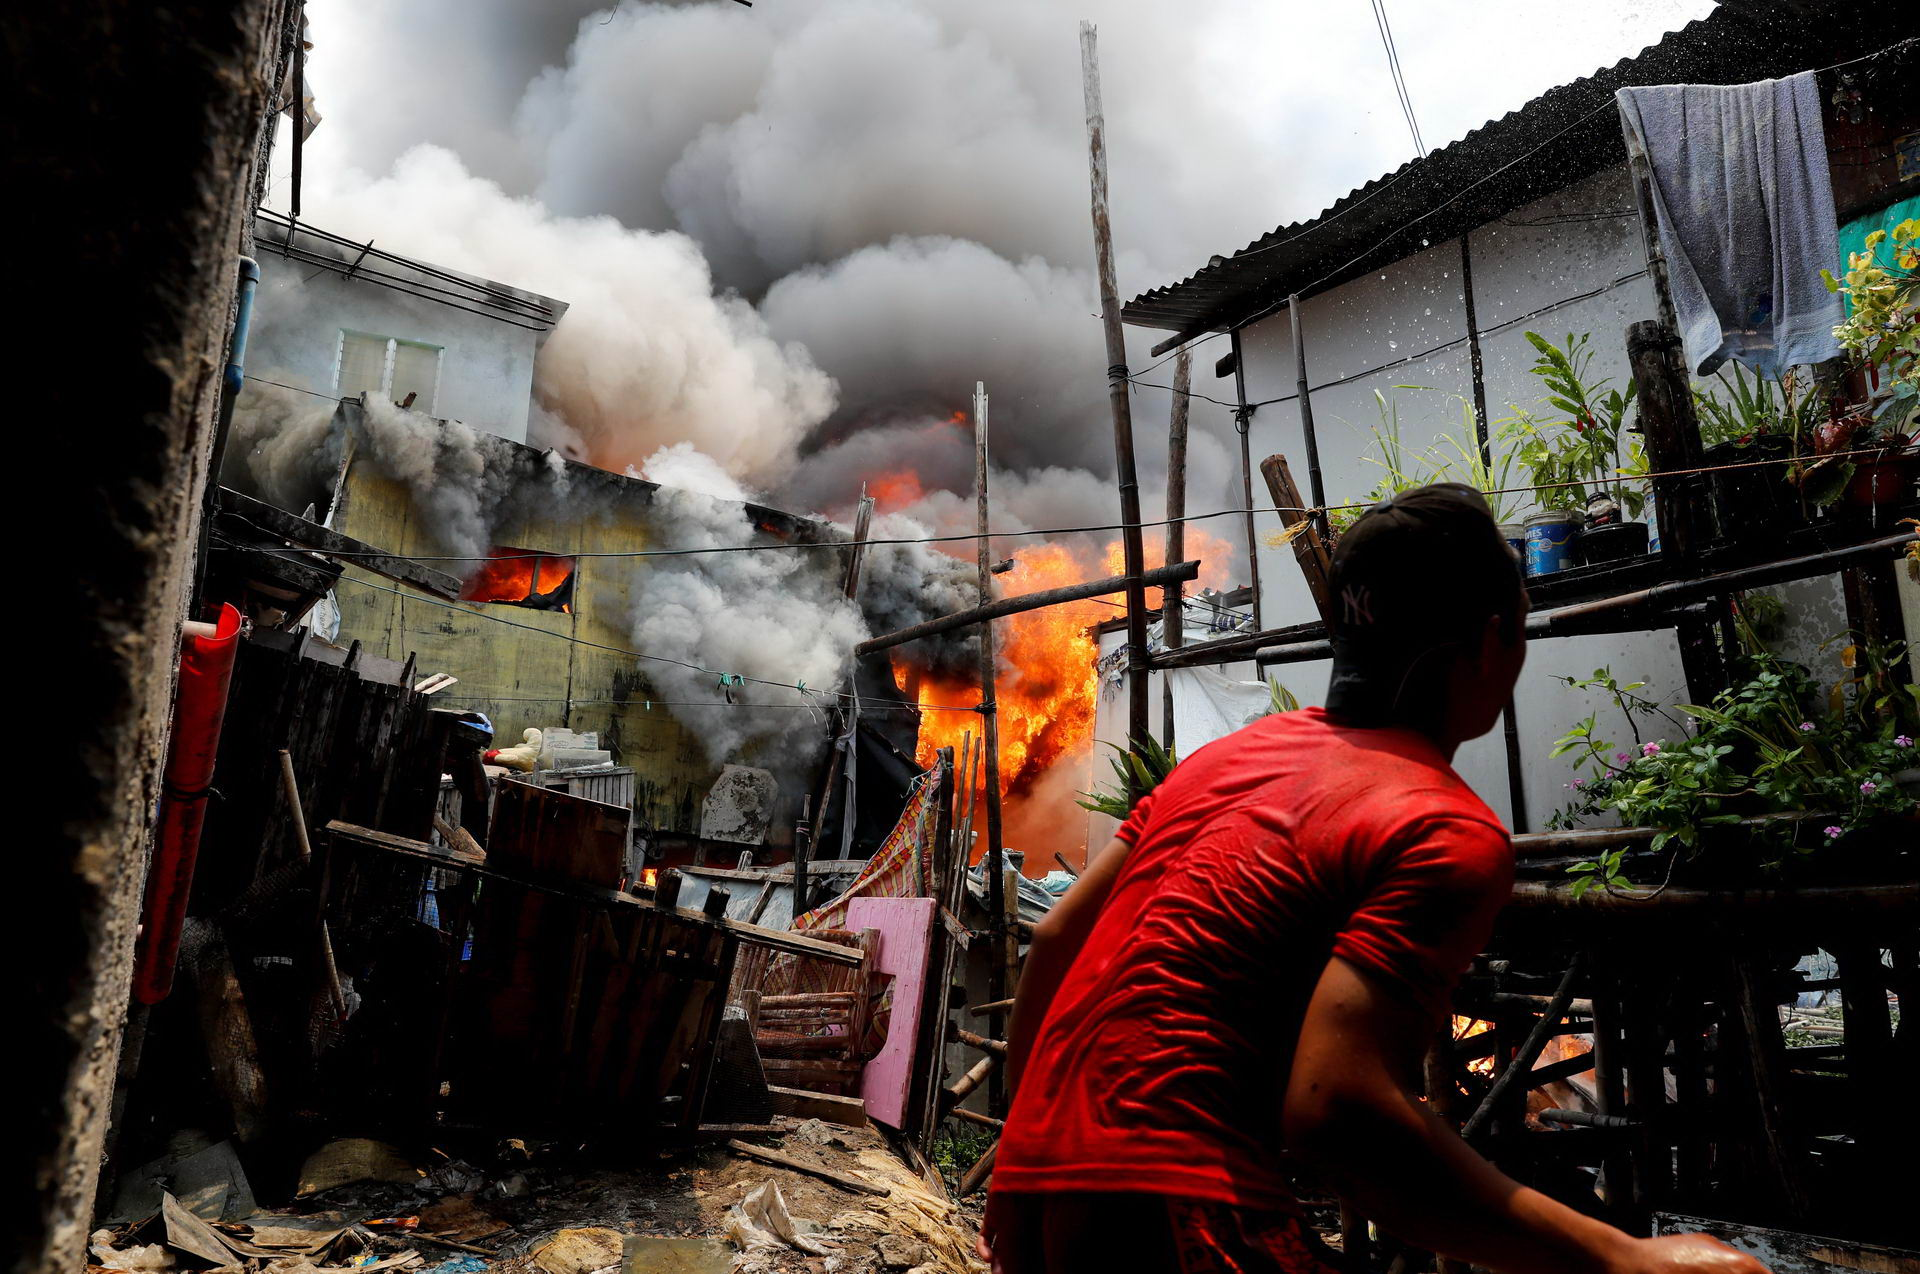 The Wider Image: Manila's slums an endless battle for firefighters